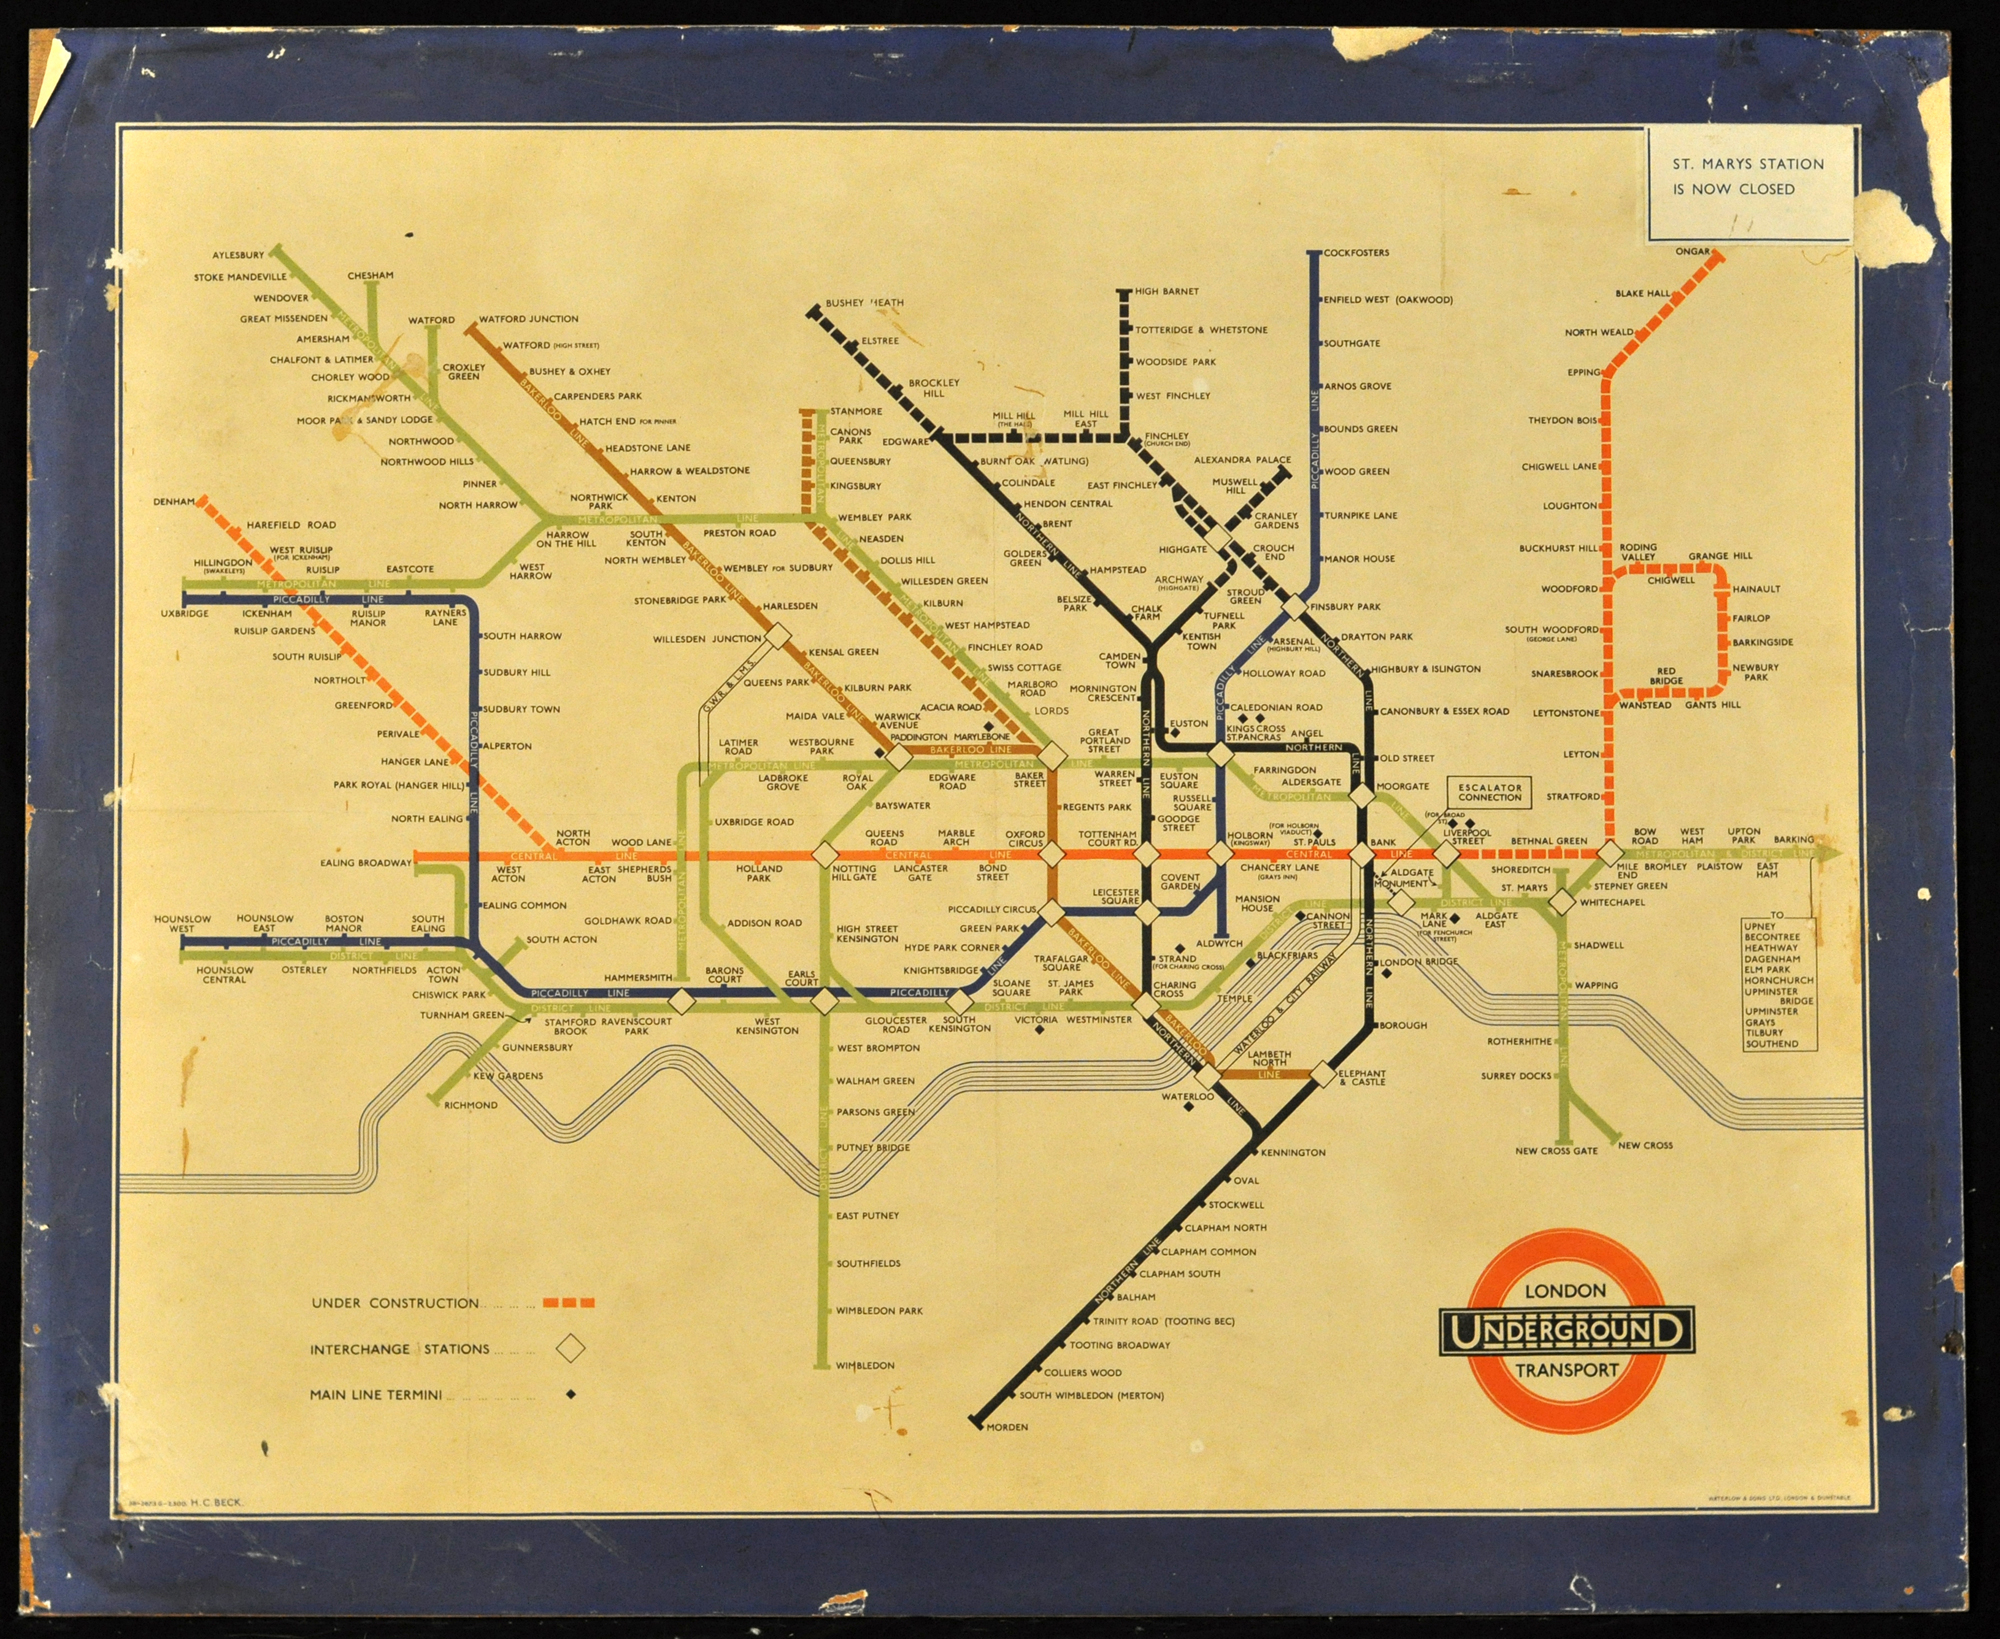 London Underground map Before u2022 After The